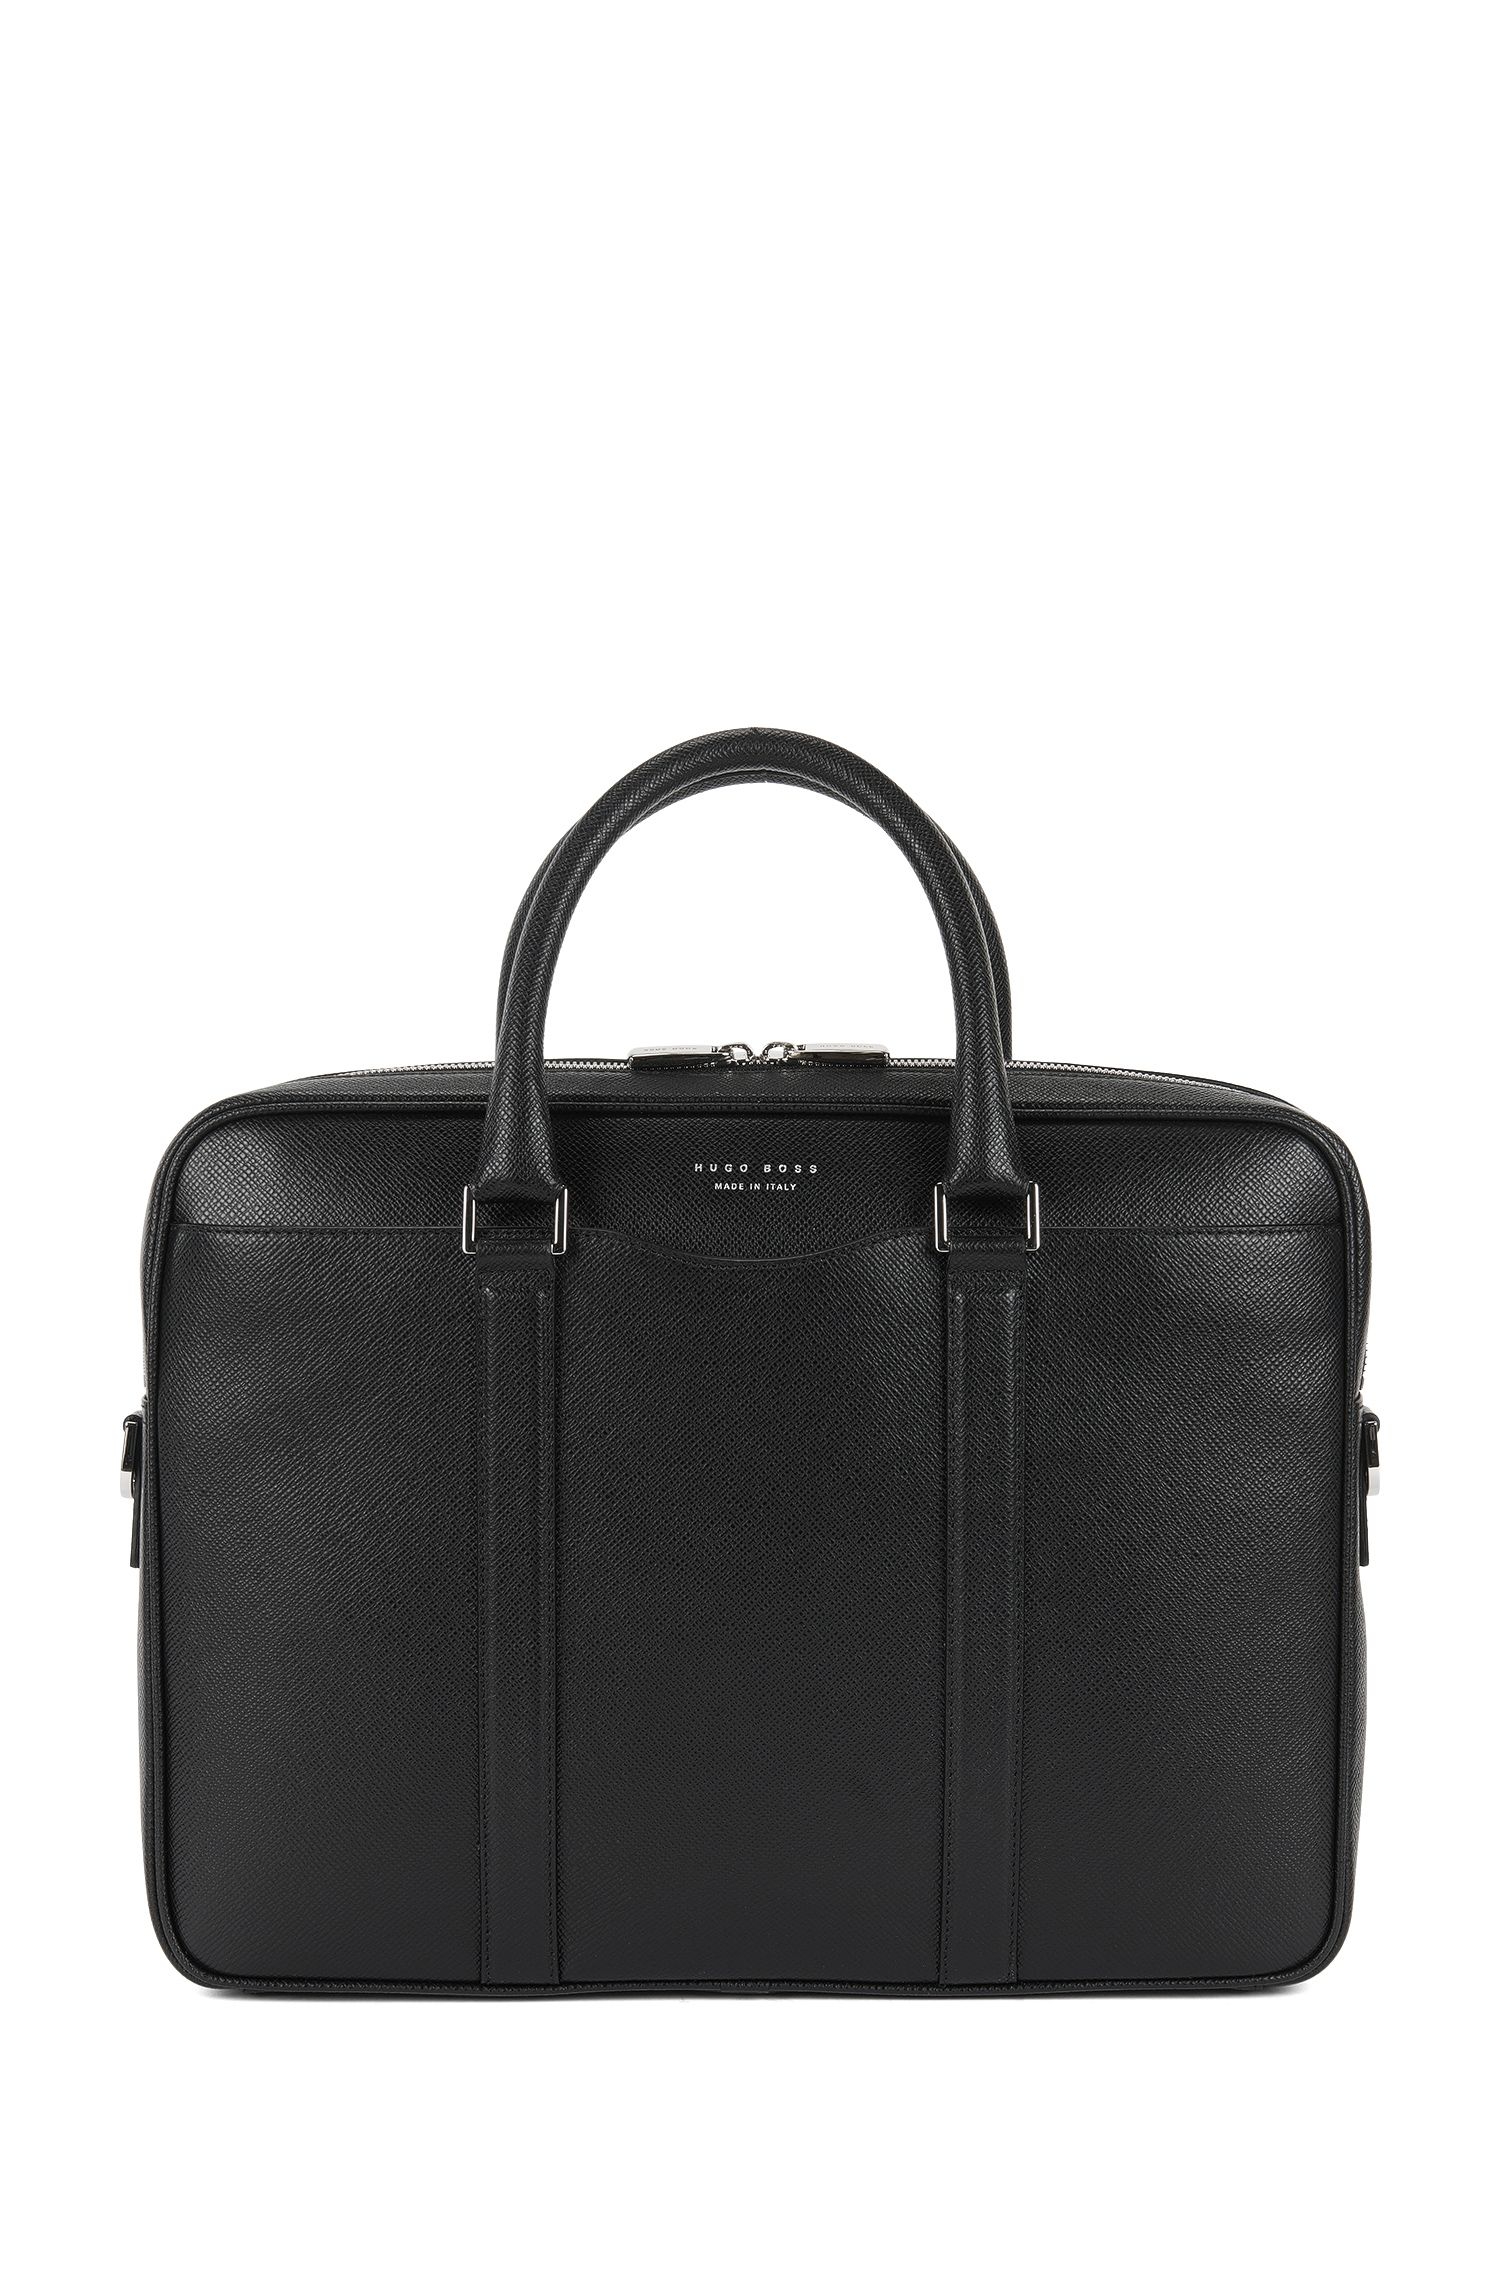 Sac BOSS de la collection Signature en cuir palmellato